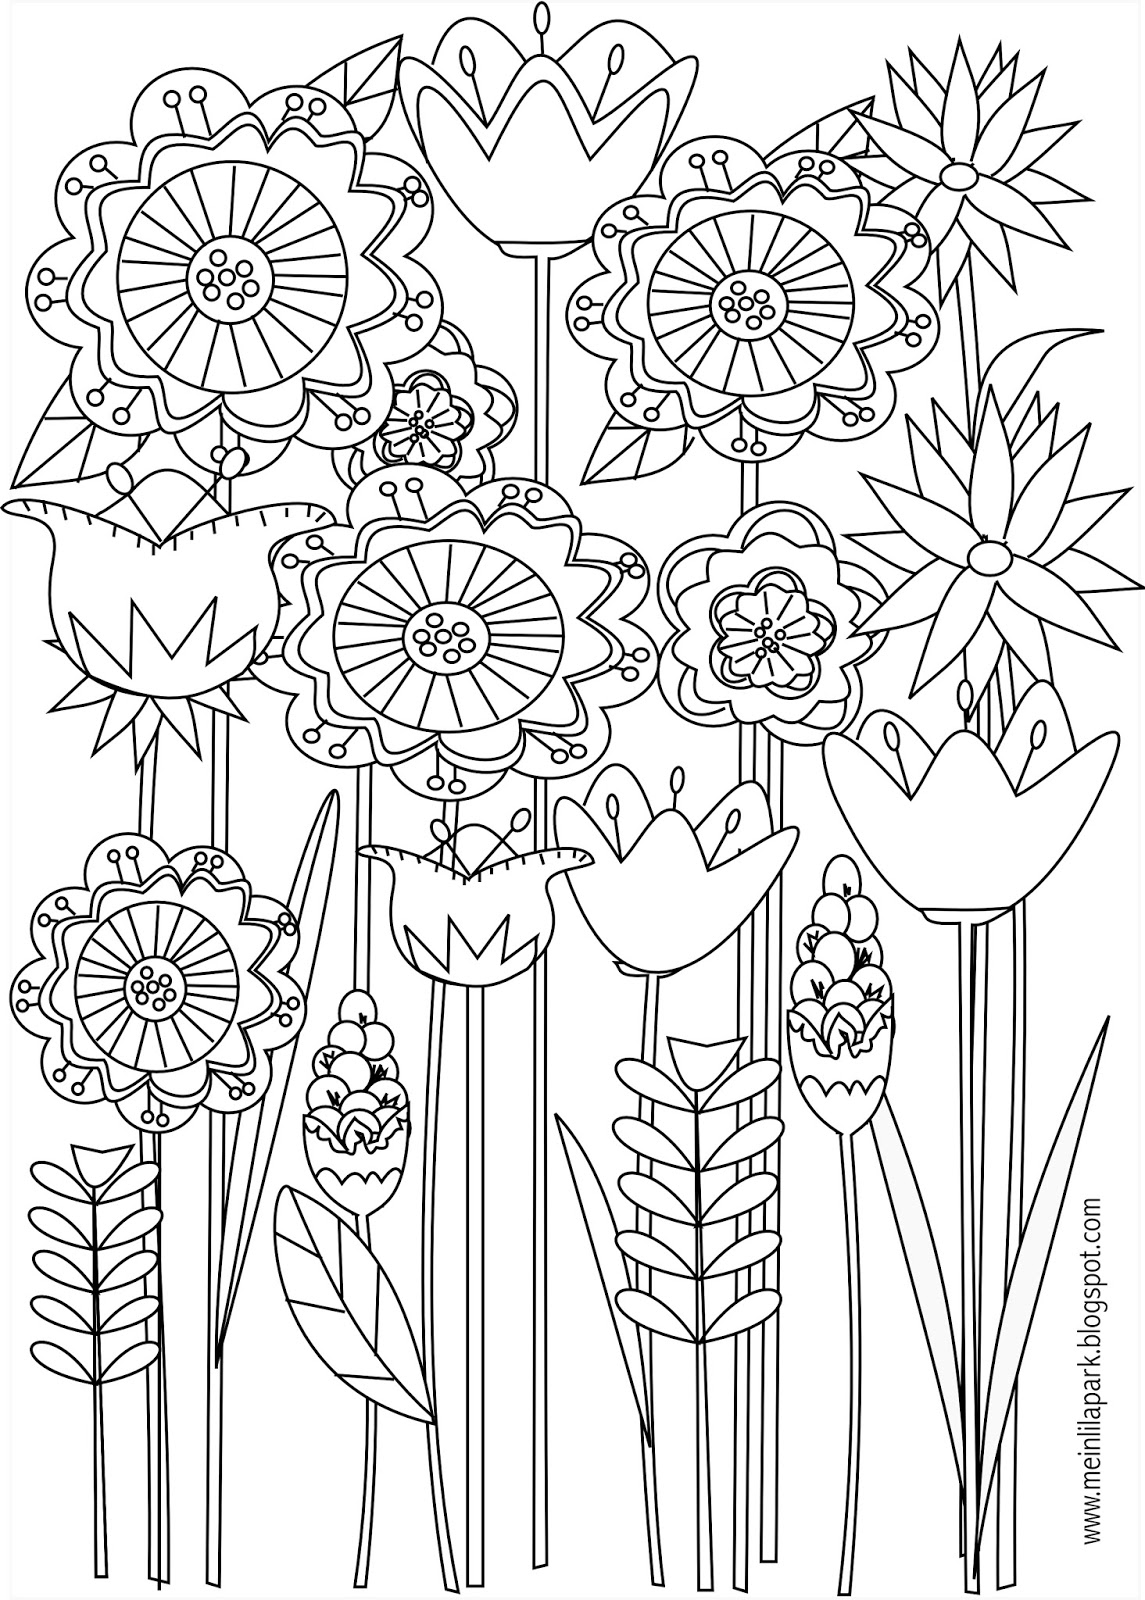 printable flower pictures single flower coloring pages at getcoloringscom free flower pictures printable